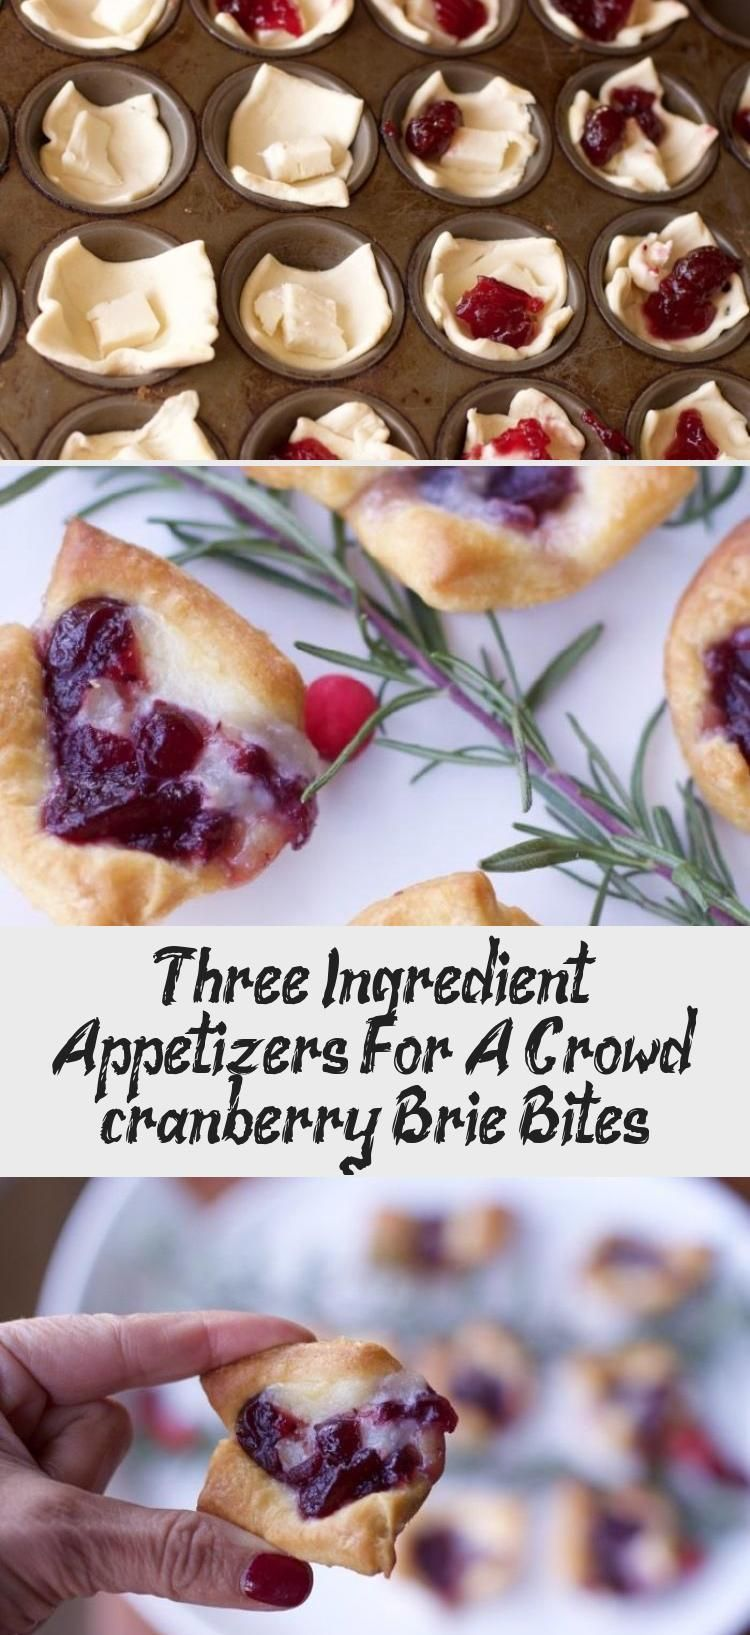 Three Ingredient Appetizers For A Crowd (cranberry Brie Bites) #cranberrybriebites